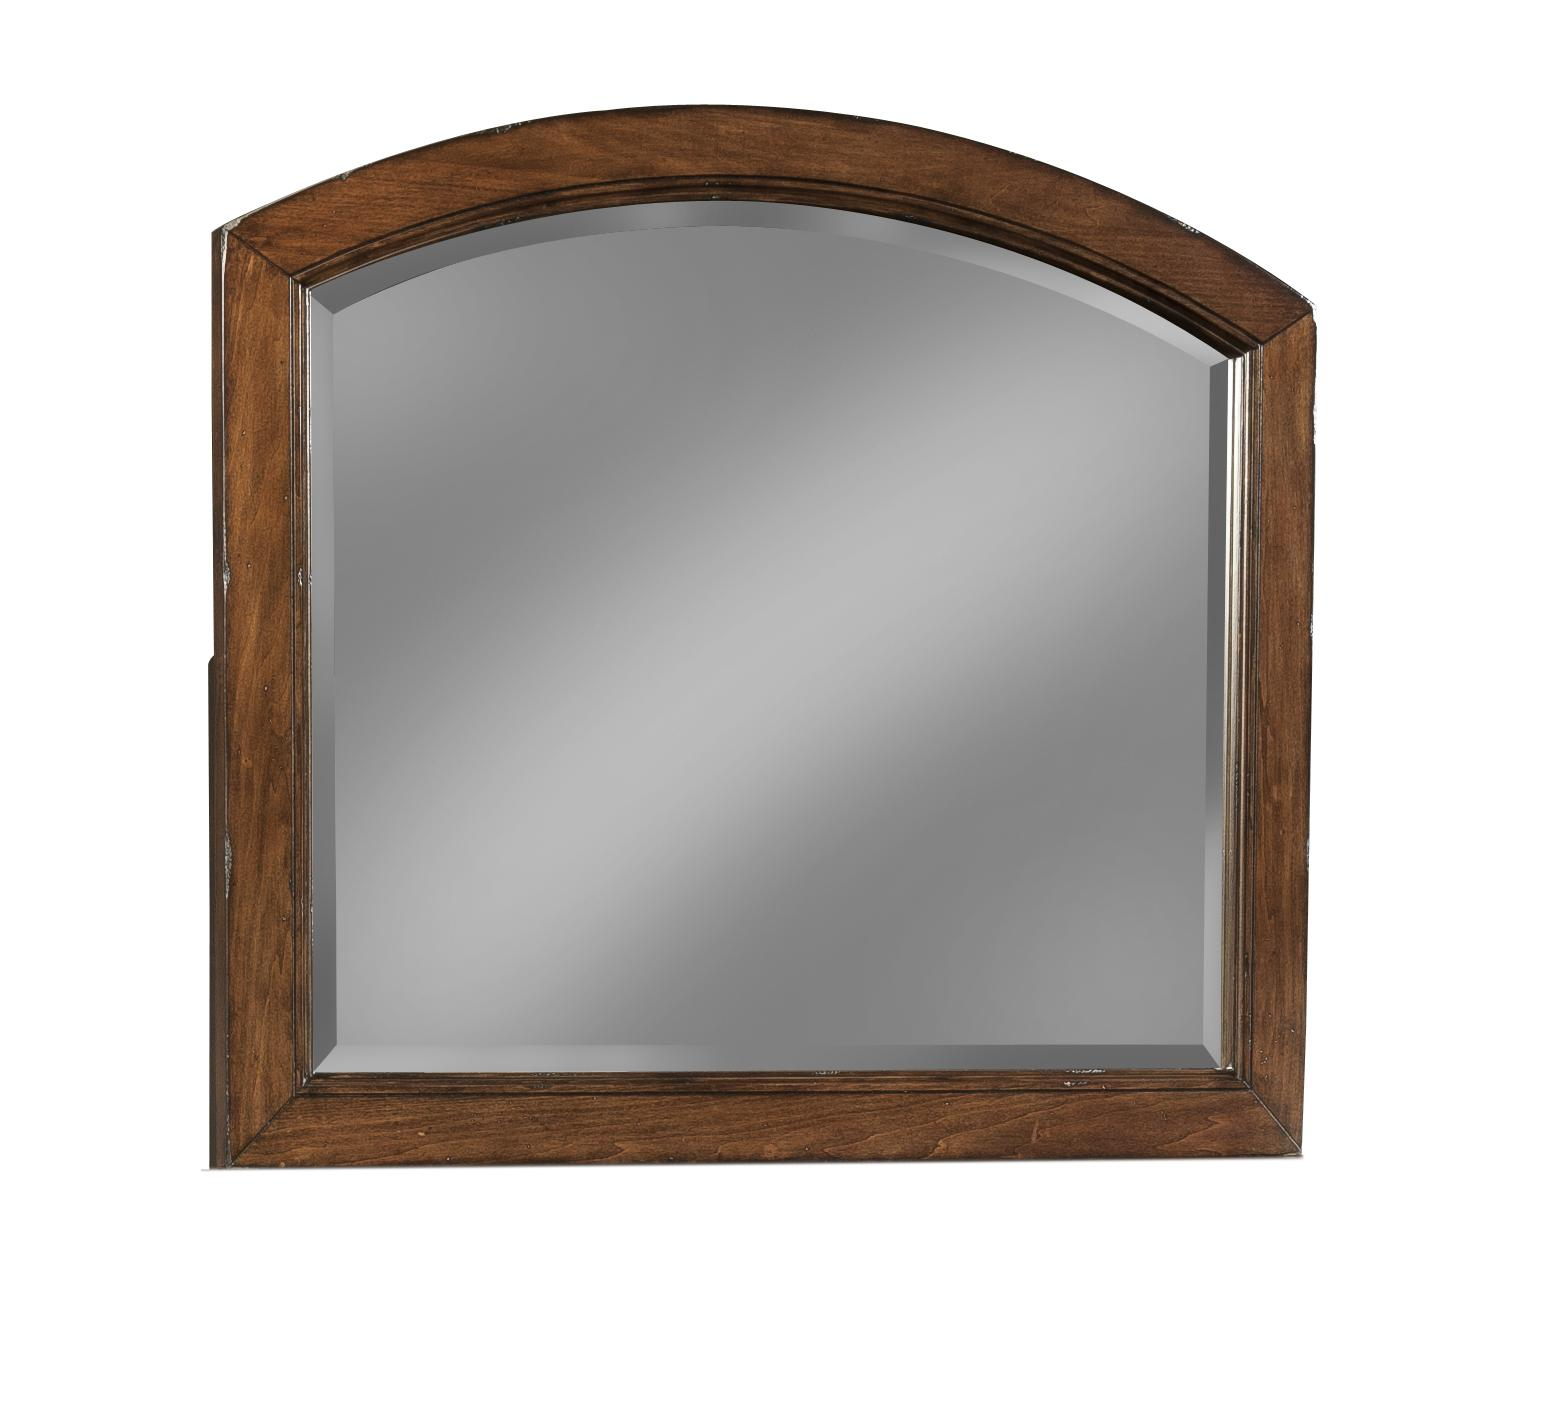 Easton Collection Blue Ridge Cherry Arched Mirror - Item Number: 426-660 MIRR